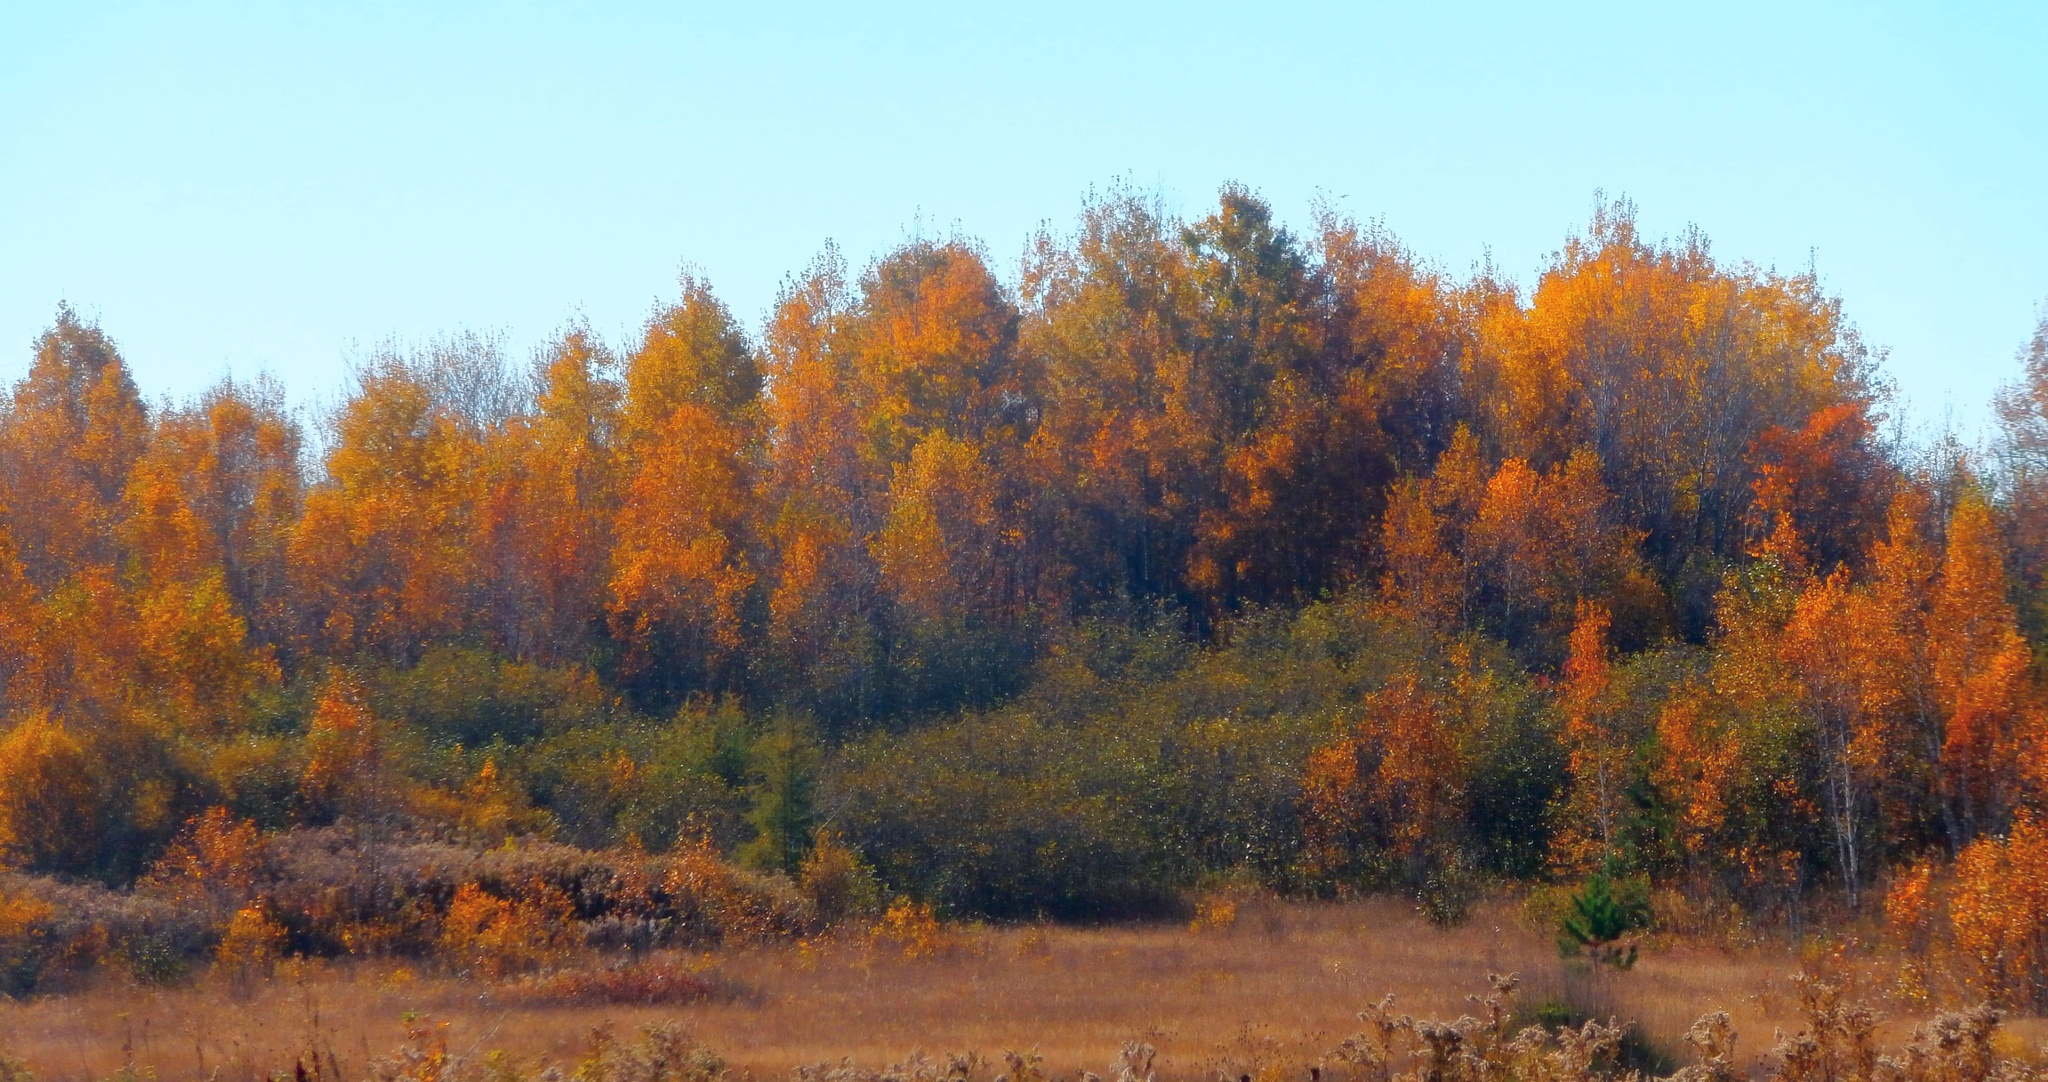 autumn landscape by tina.linge.3